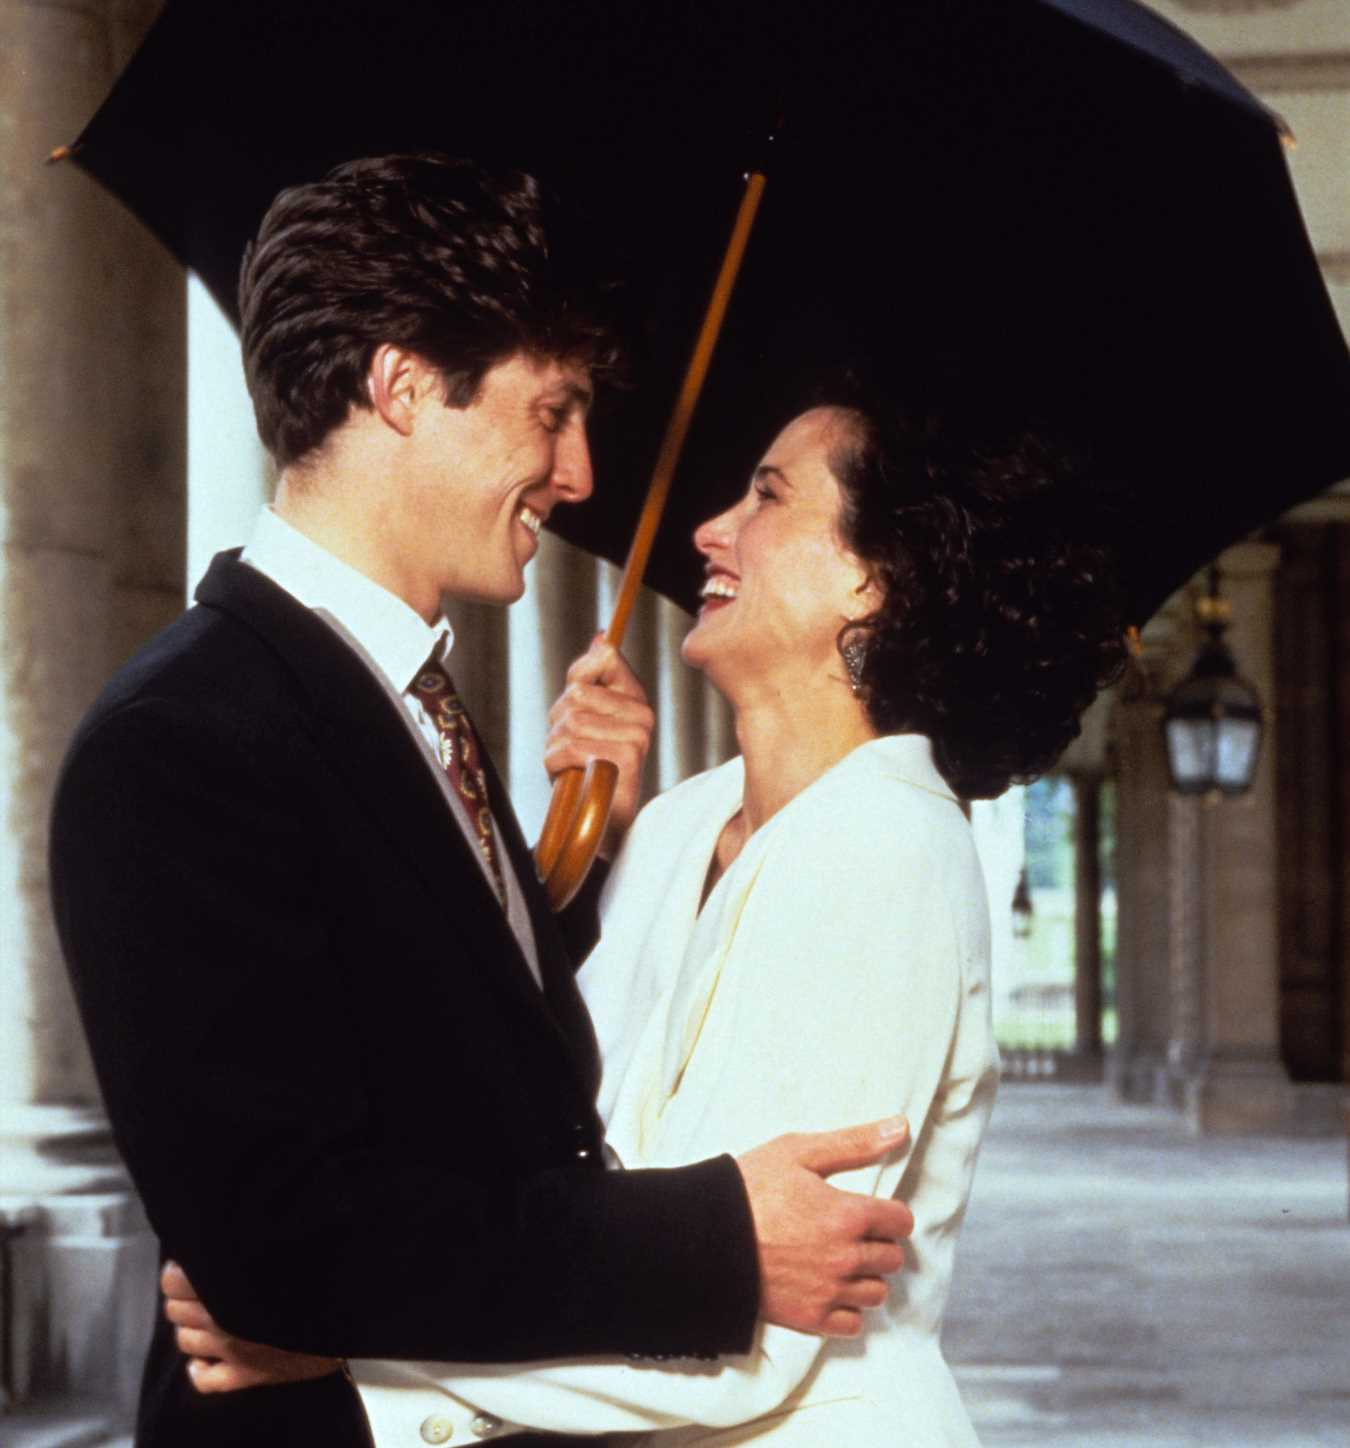 Hugh Grant, Andie MacDowell and the Cast of Four Weddings and a Funeral to Reunite for Charity